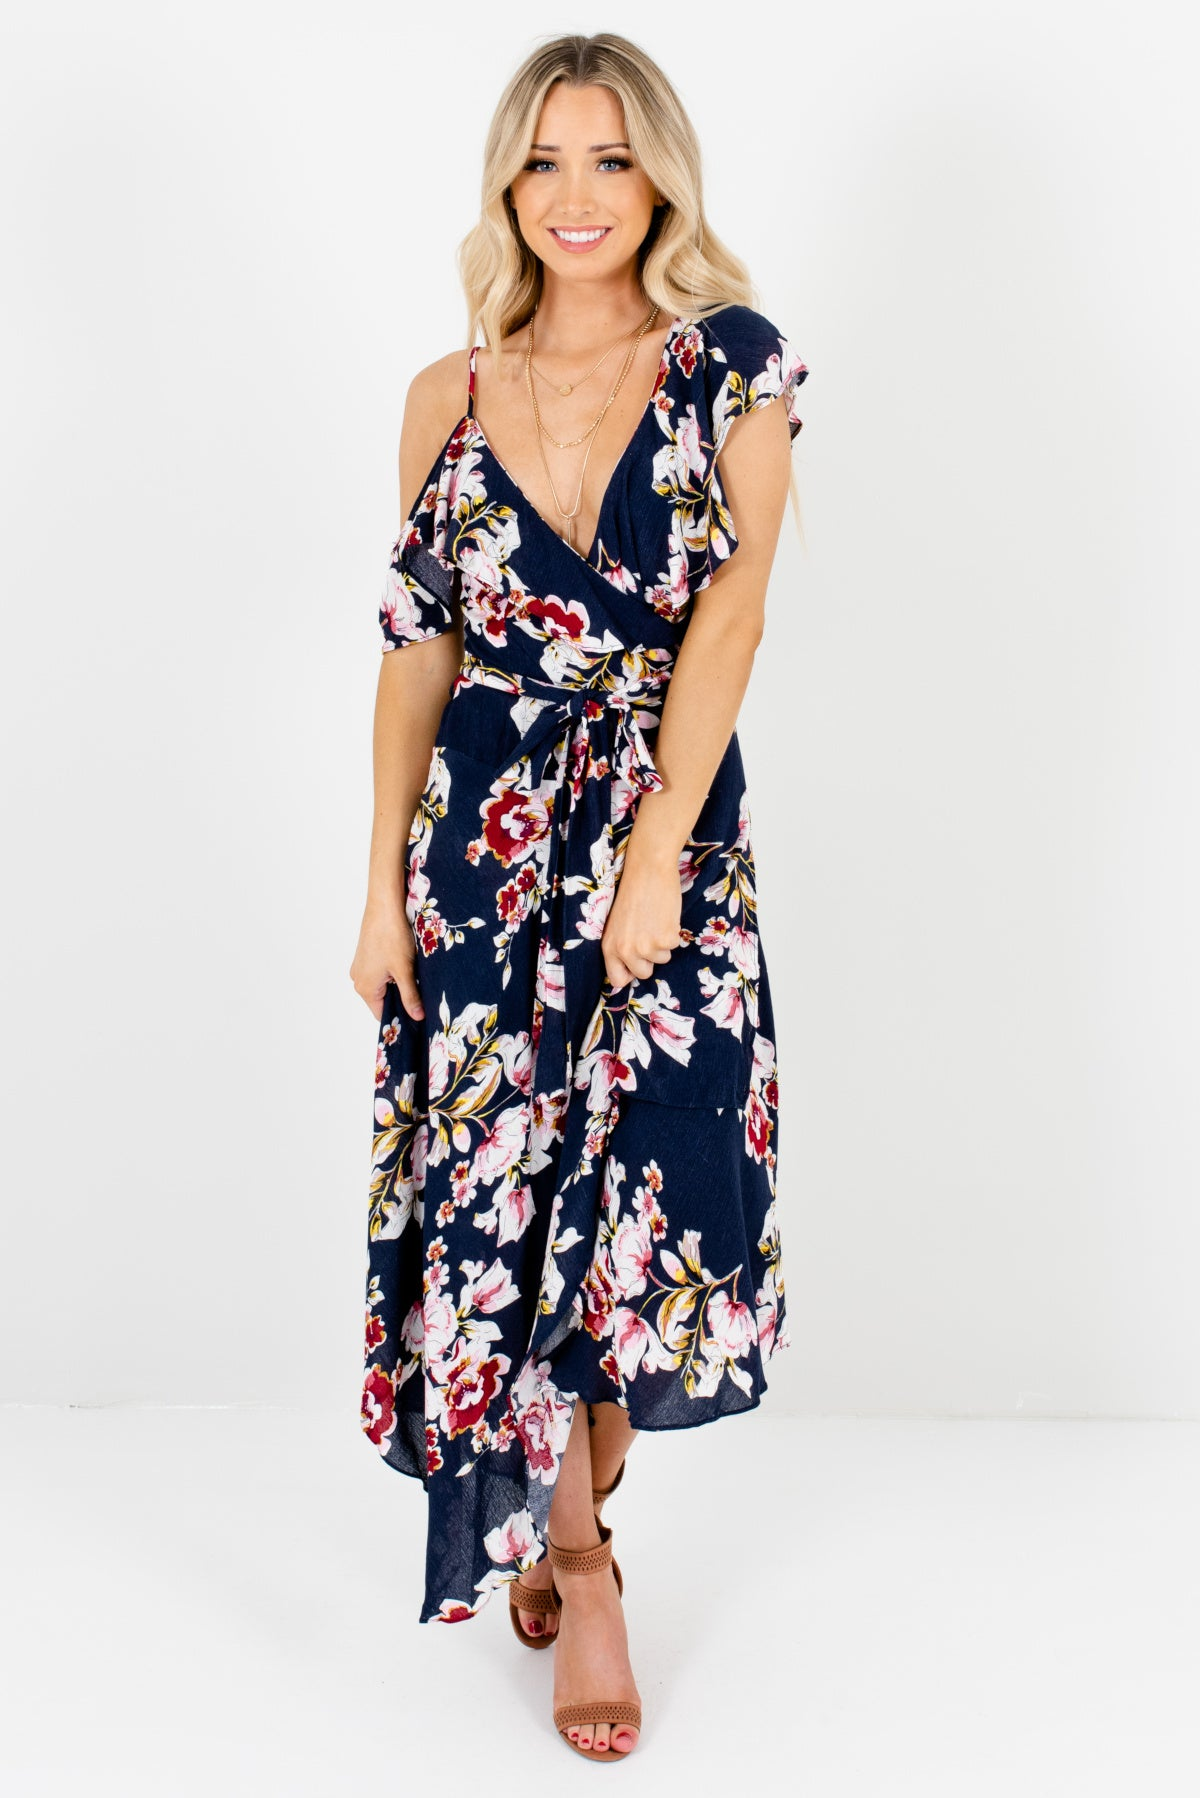 Navy Blue Multicolored Floral Patterned Boutique Midi Dresses for Women